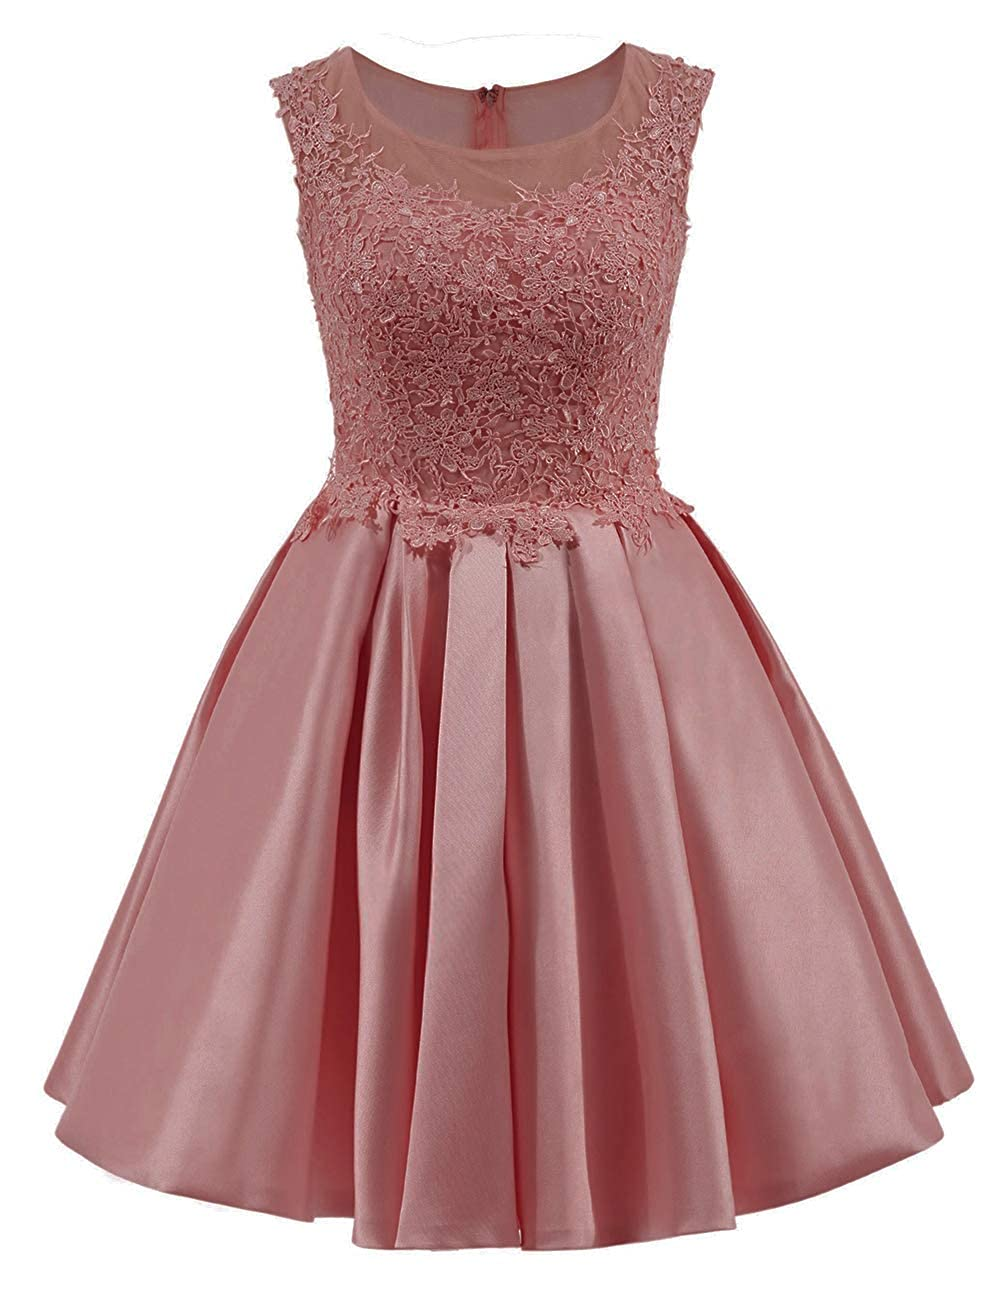 bluesh Uther Short Homecoming Dress Cap Sleeves Appliques Vintage Swing Dress Cocktail Dresses